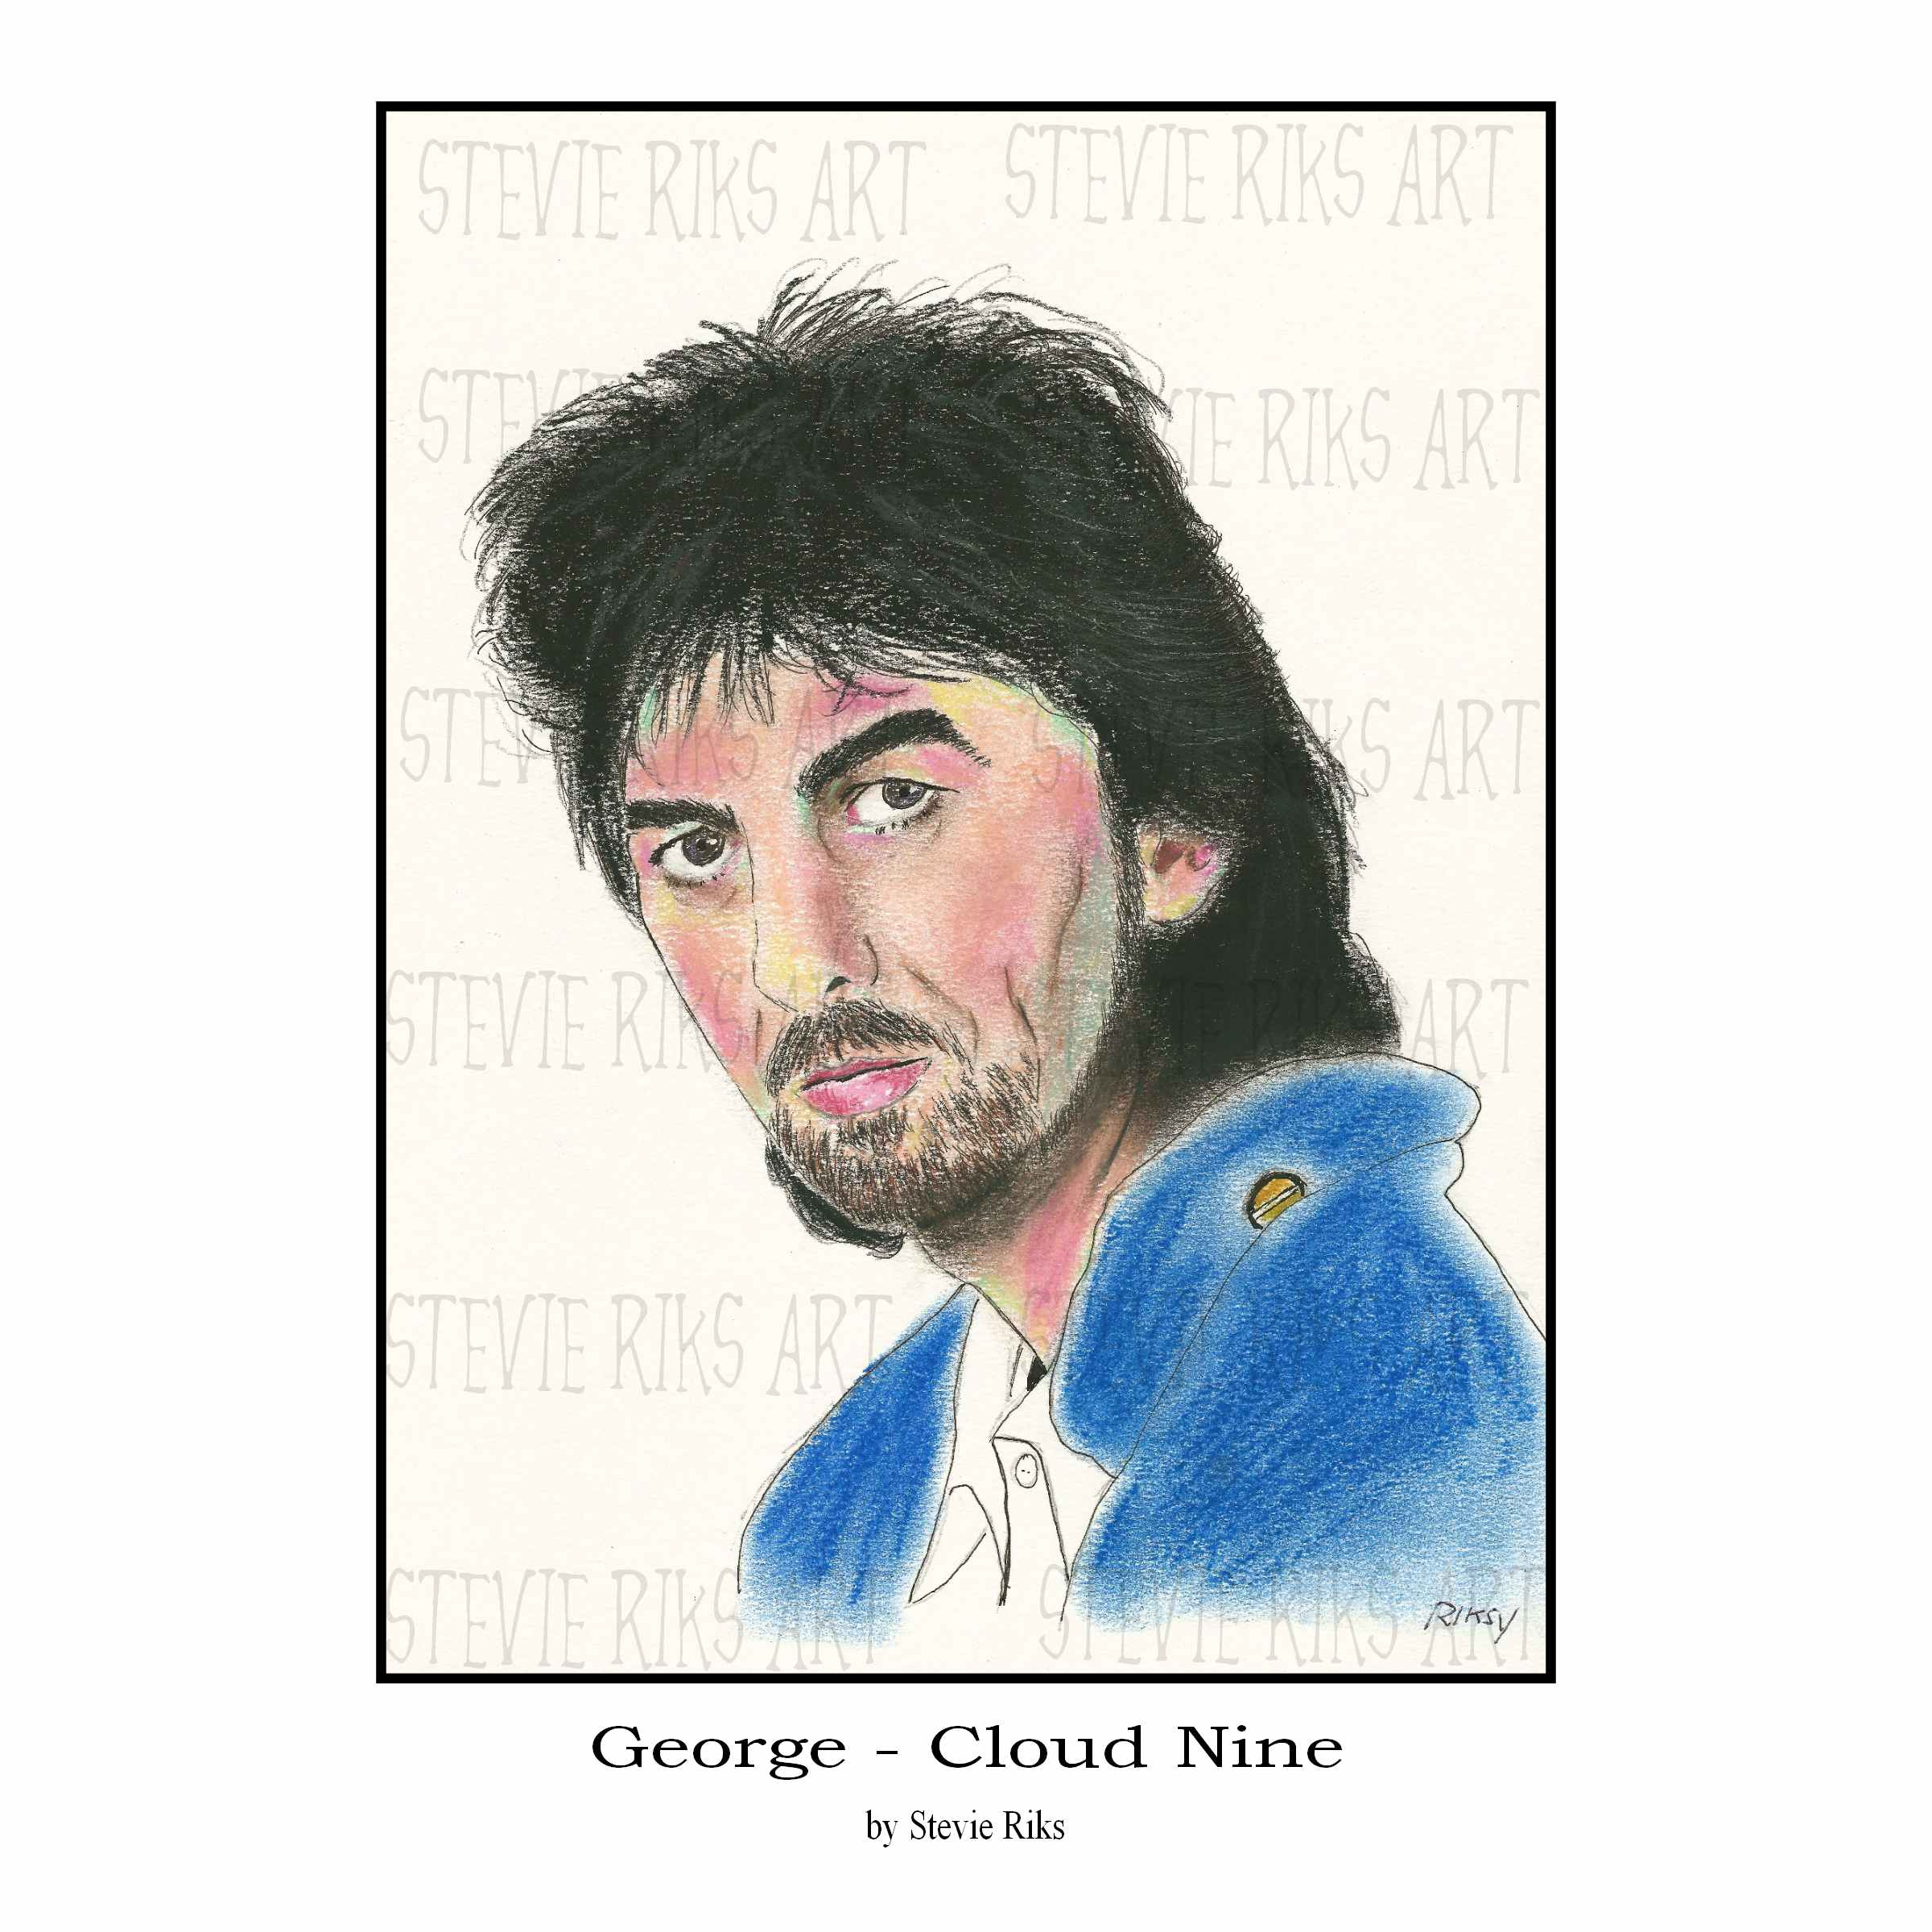 George - Cloud Nine